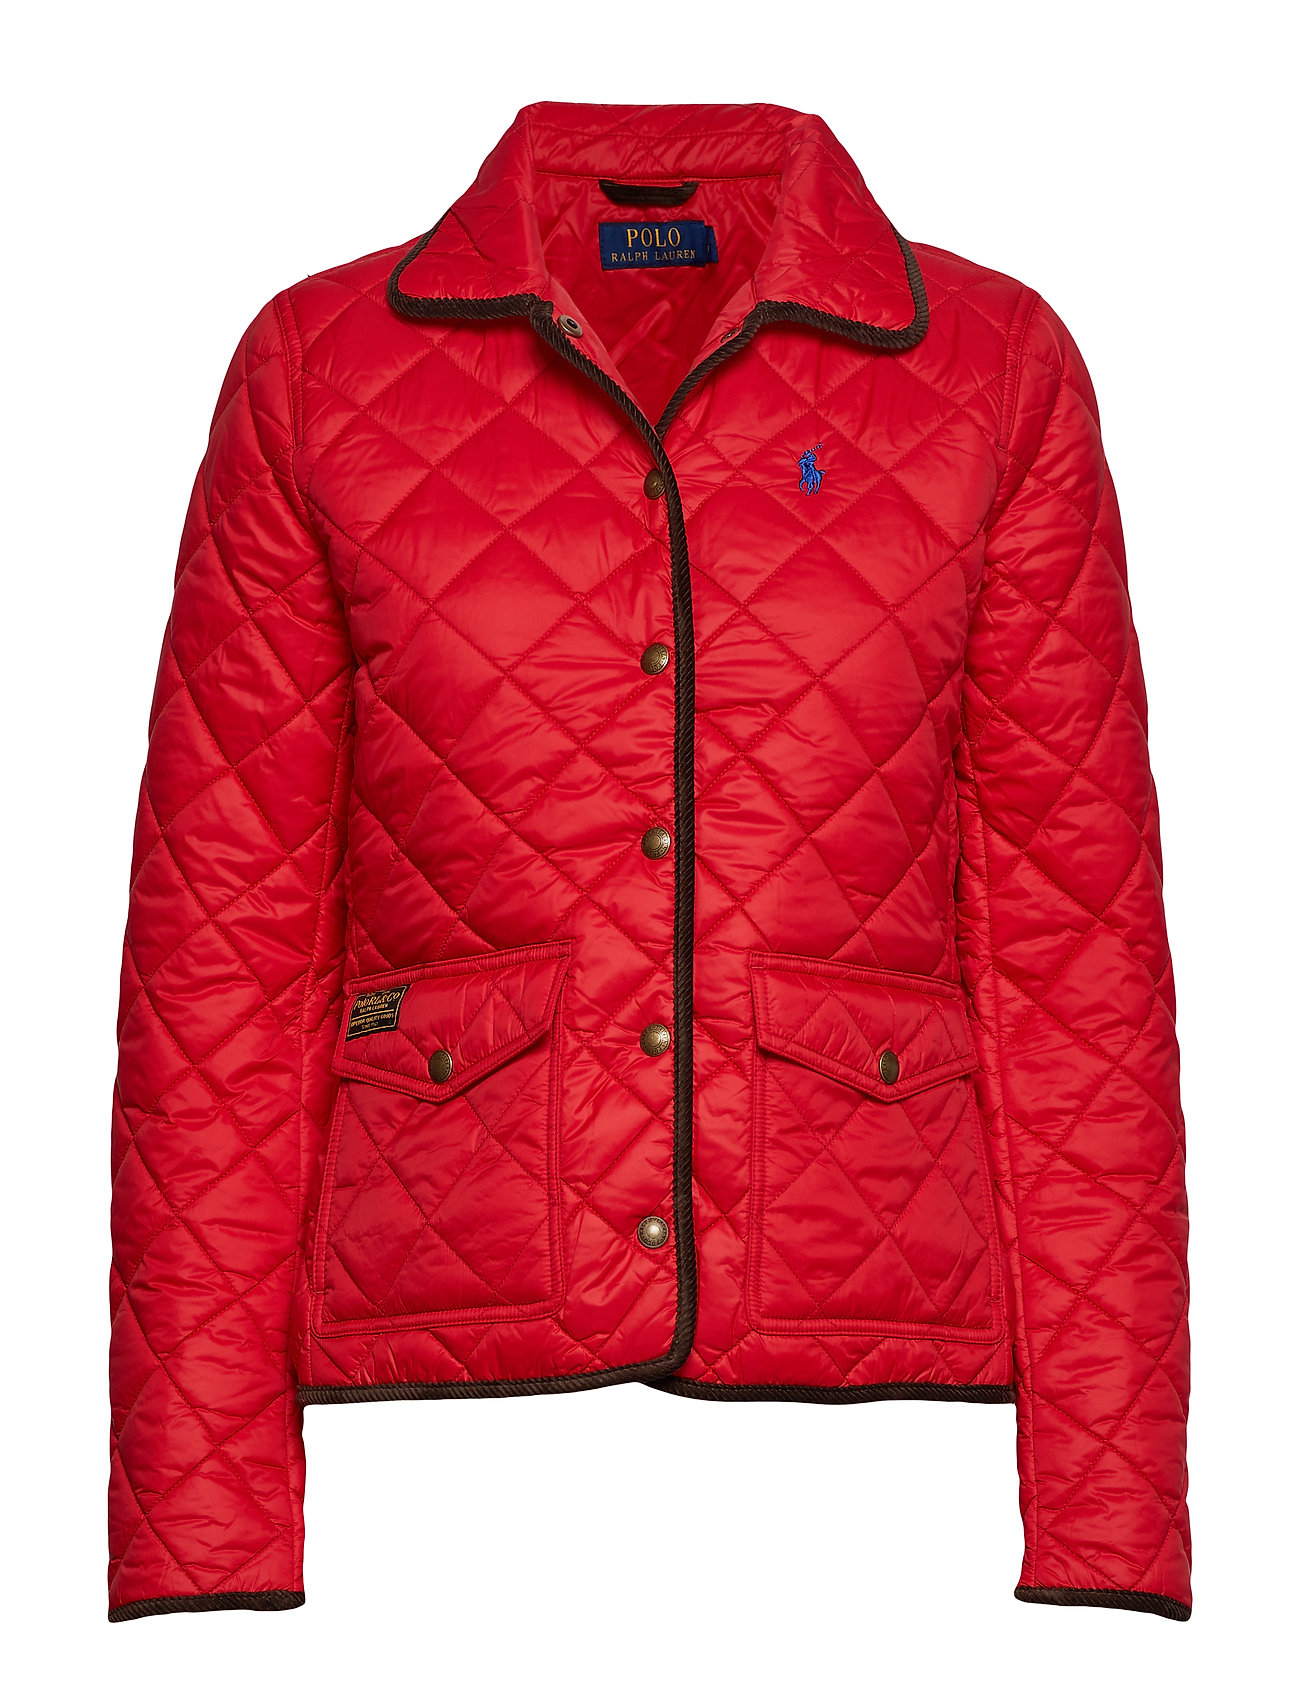 Ralph Quilted Lauren Quilted Jacketinjection RedPolo Ralph RedPolo Jacketinjection MGSpqVUz